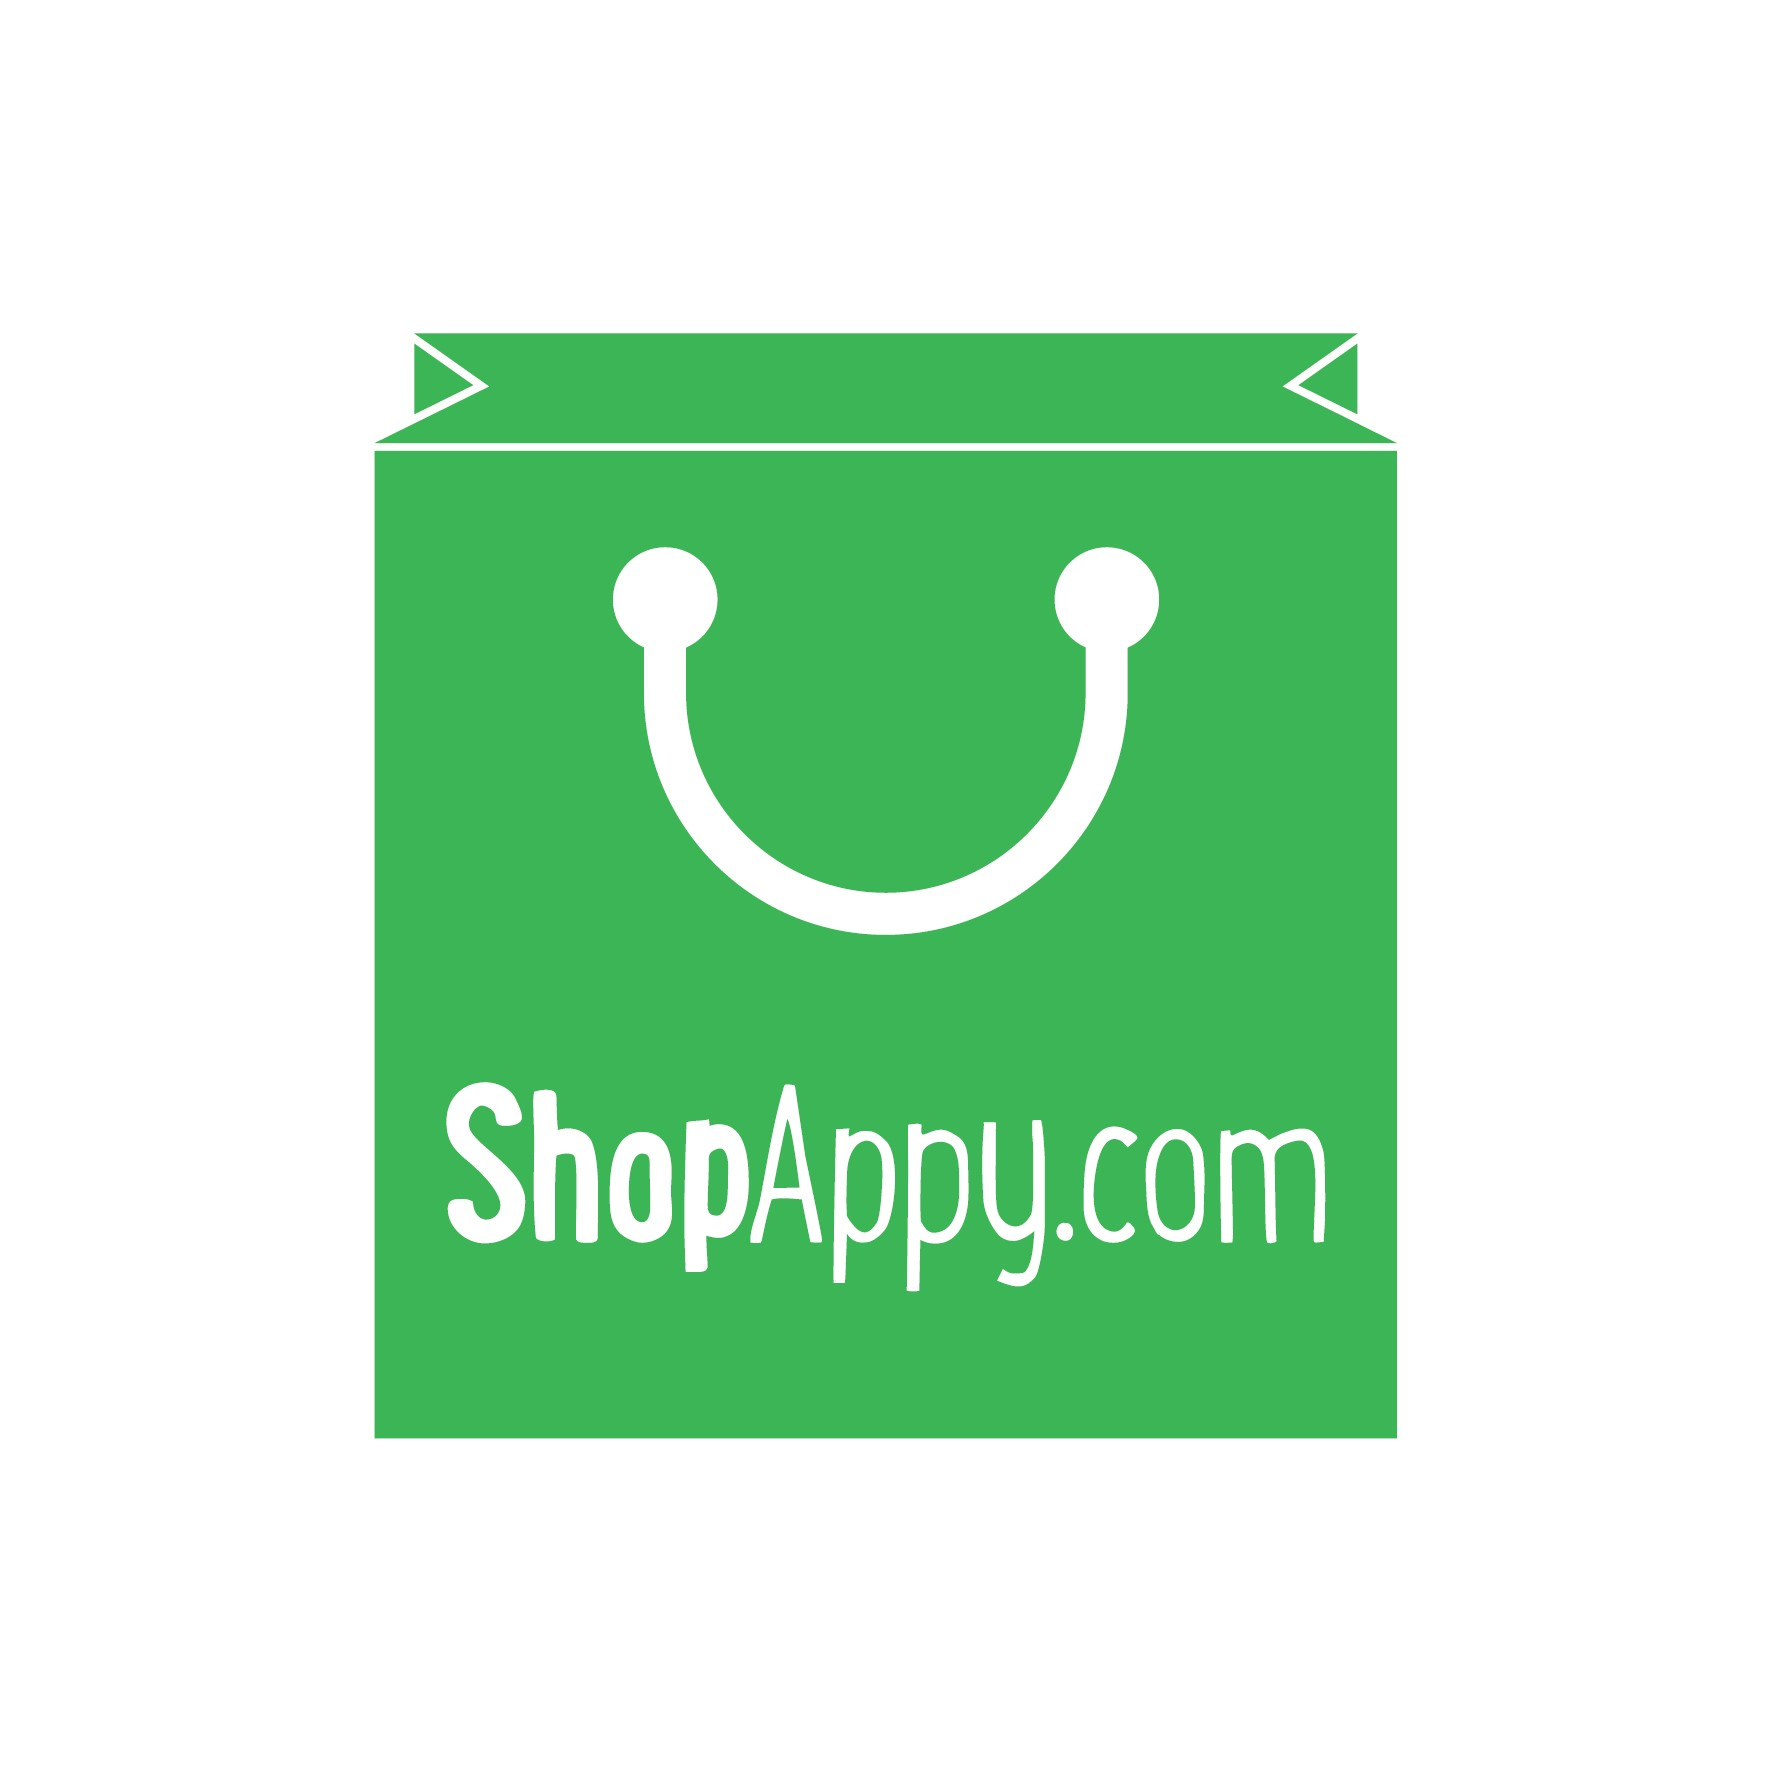 shopappy logo.jpg